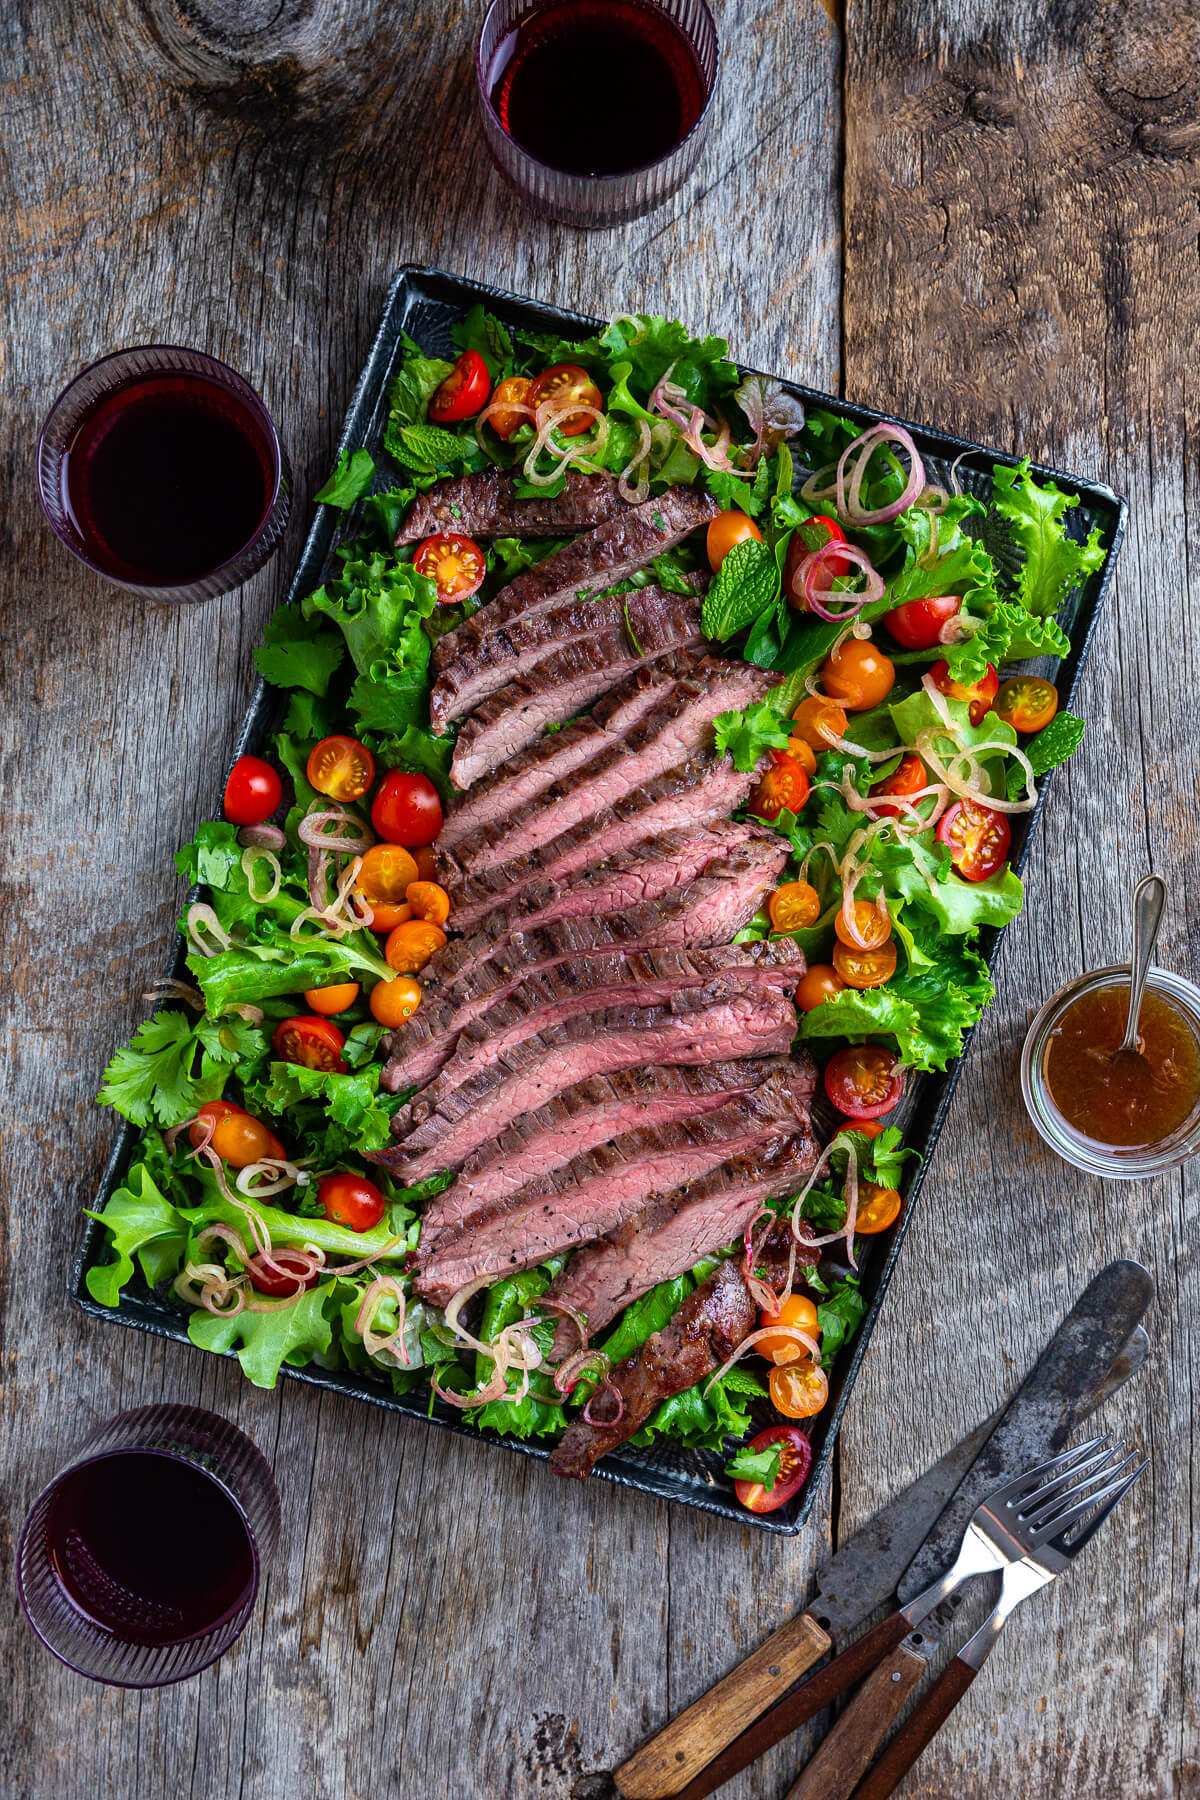 Overhead view of sliced Thai beef with salad greens, tomatoes, and, fresh herbs on a metal tray.